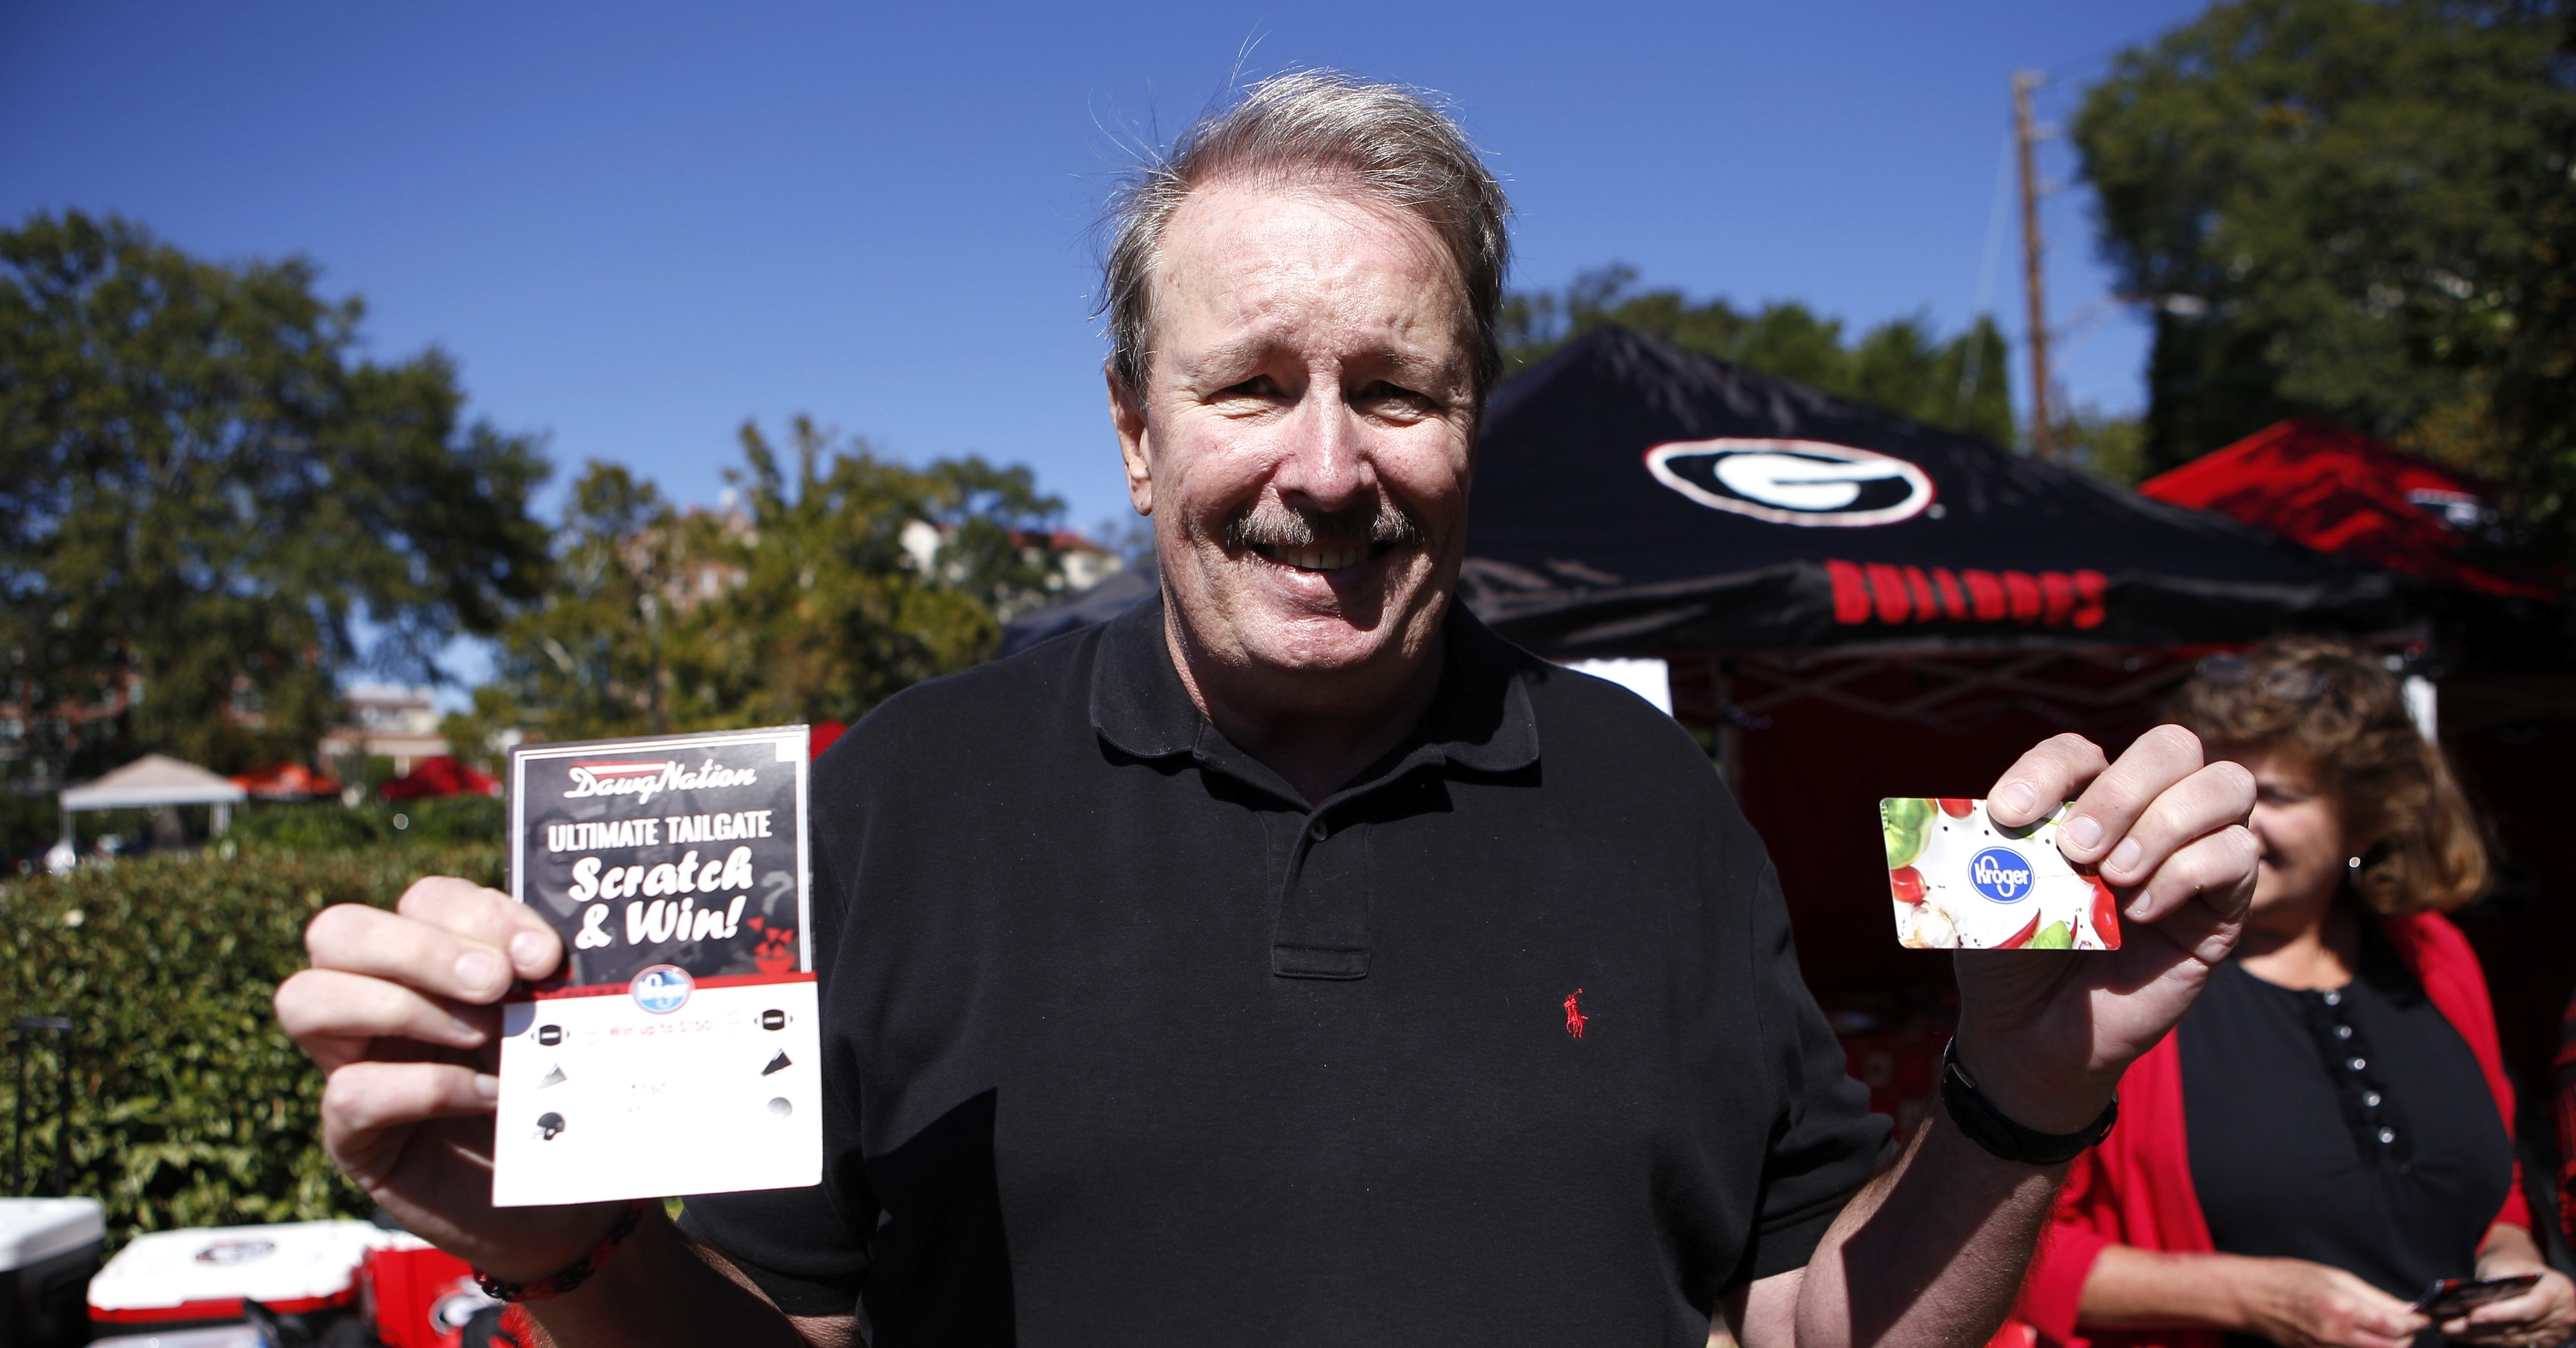 PHOTOS: UGA fans out tailgating for big SEC East showdown